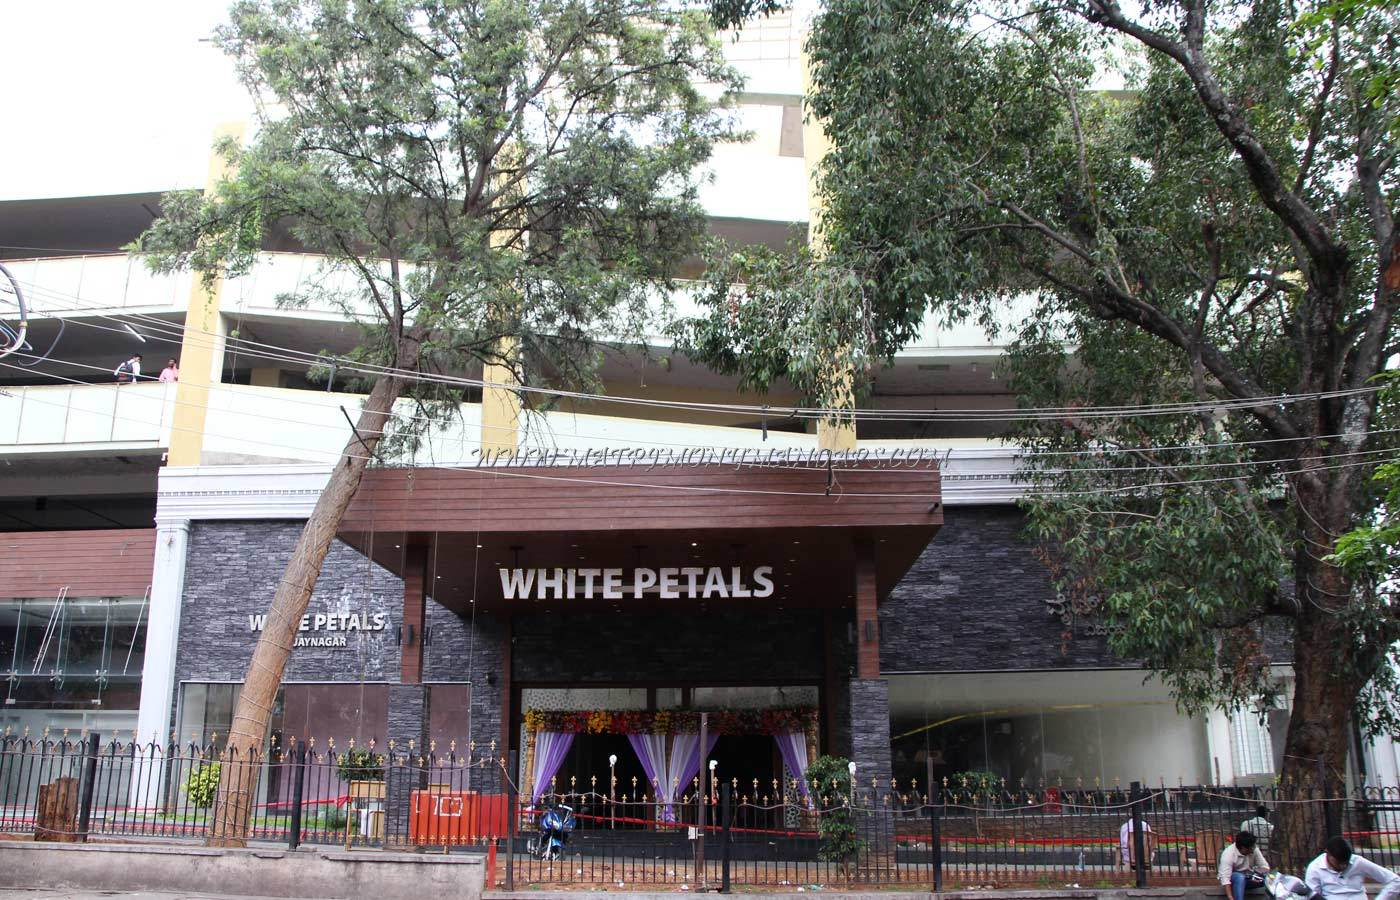 Find the availability of the White Petals Vijayanagar (A/C) in Vijayanagar, Bangalore and avail special offers